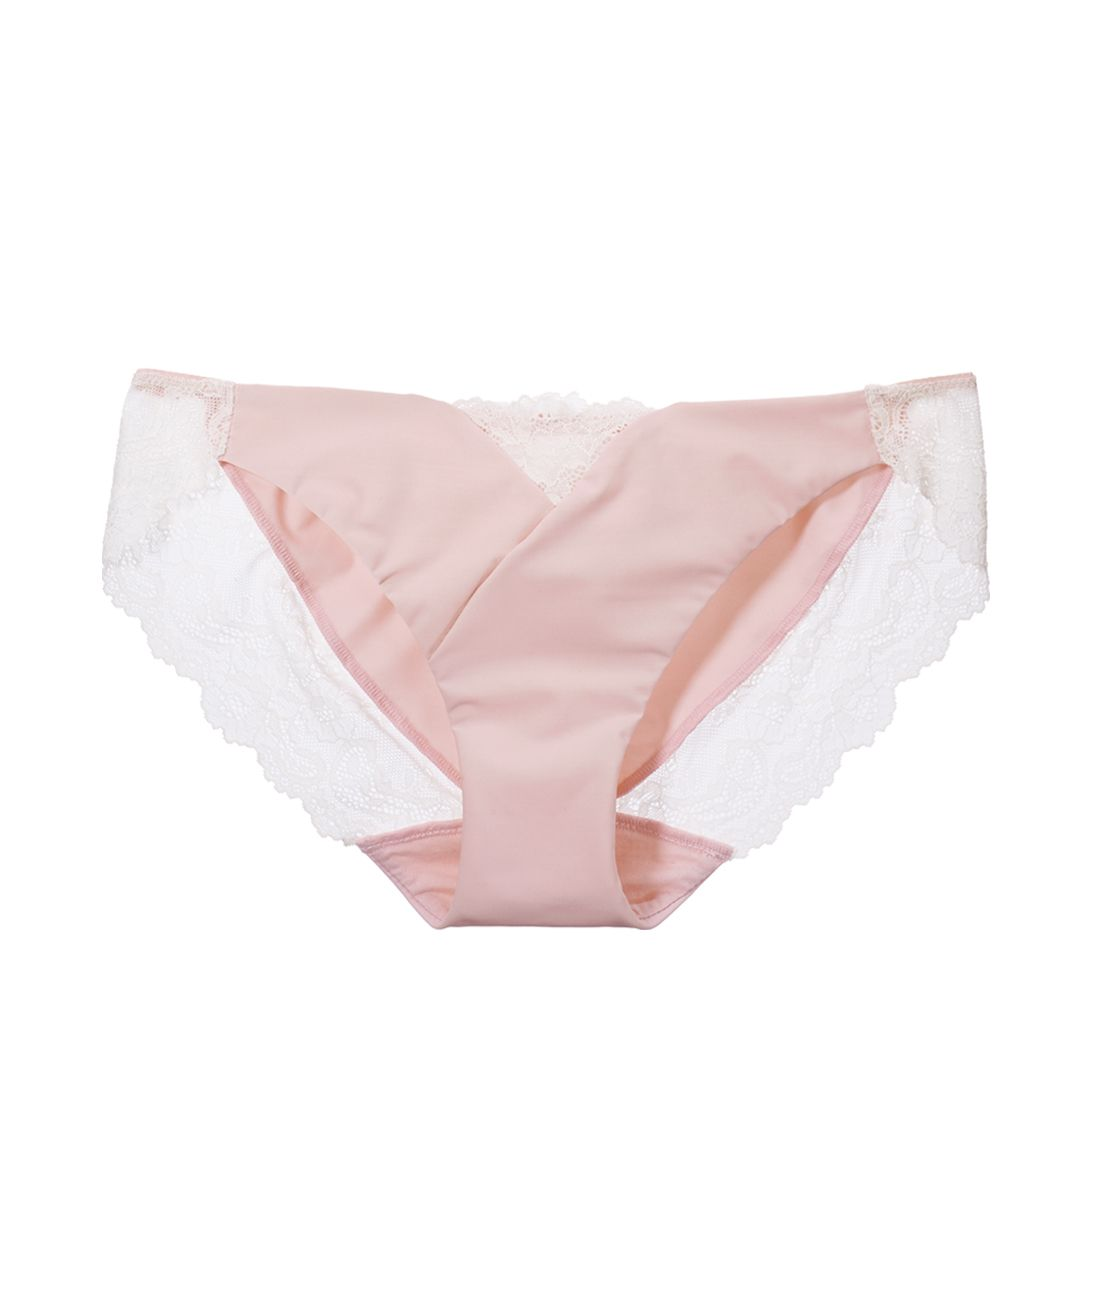 Hami meat light shape panty